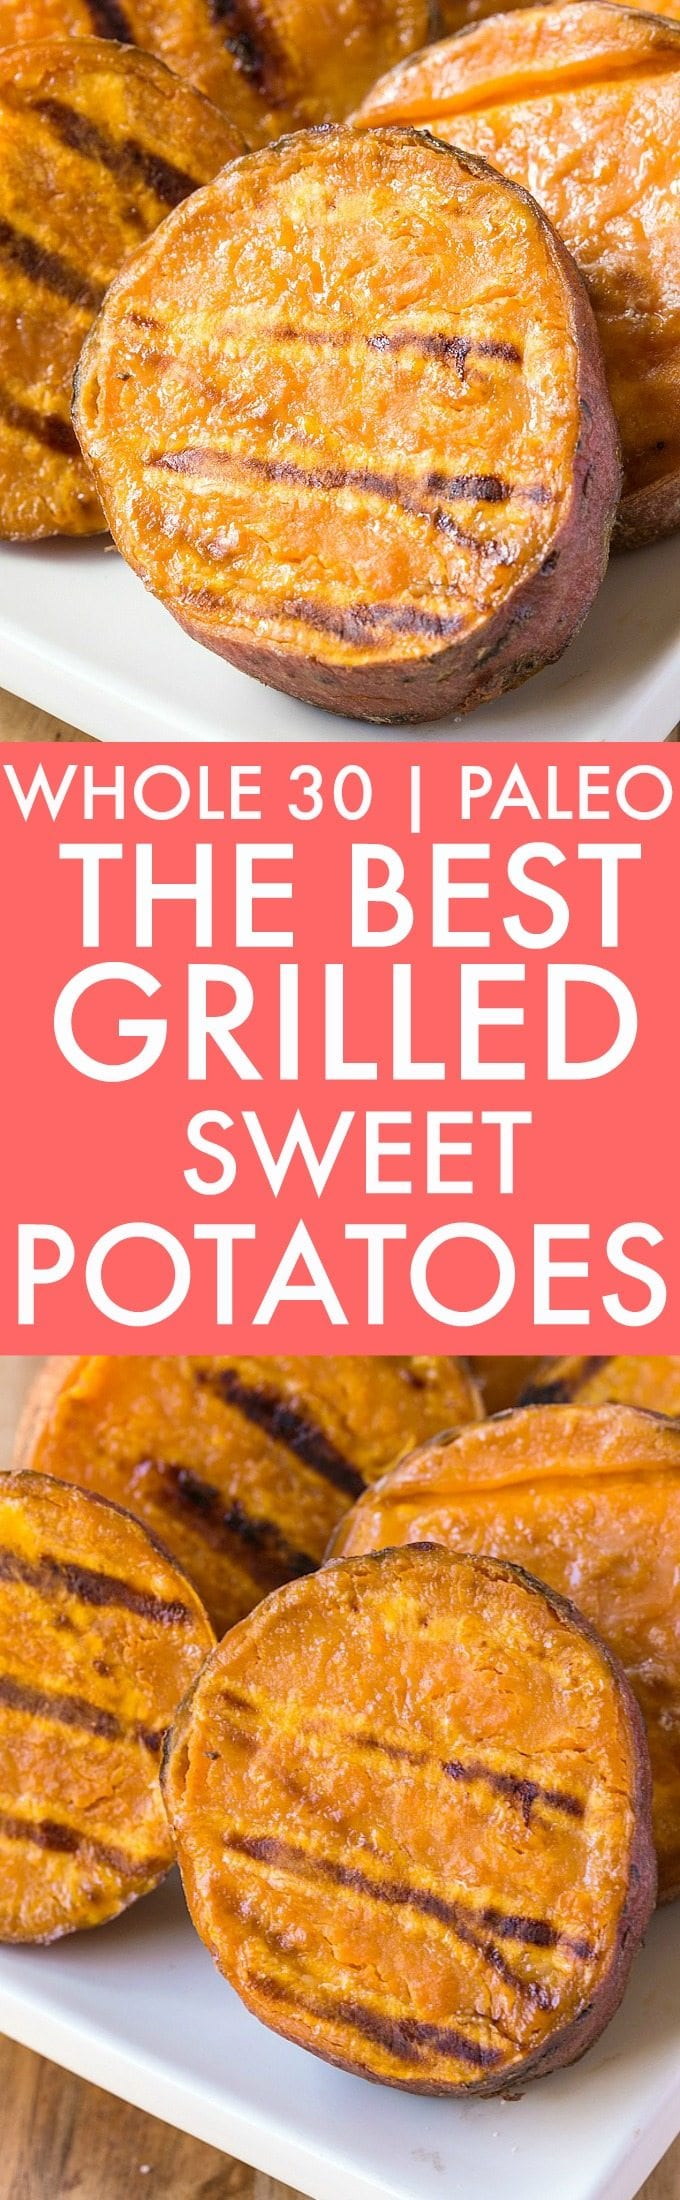 Whole30, paleo and vegan grilled sweet potatoes recipe made on the grill, george foreman and even a bbq!